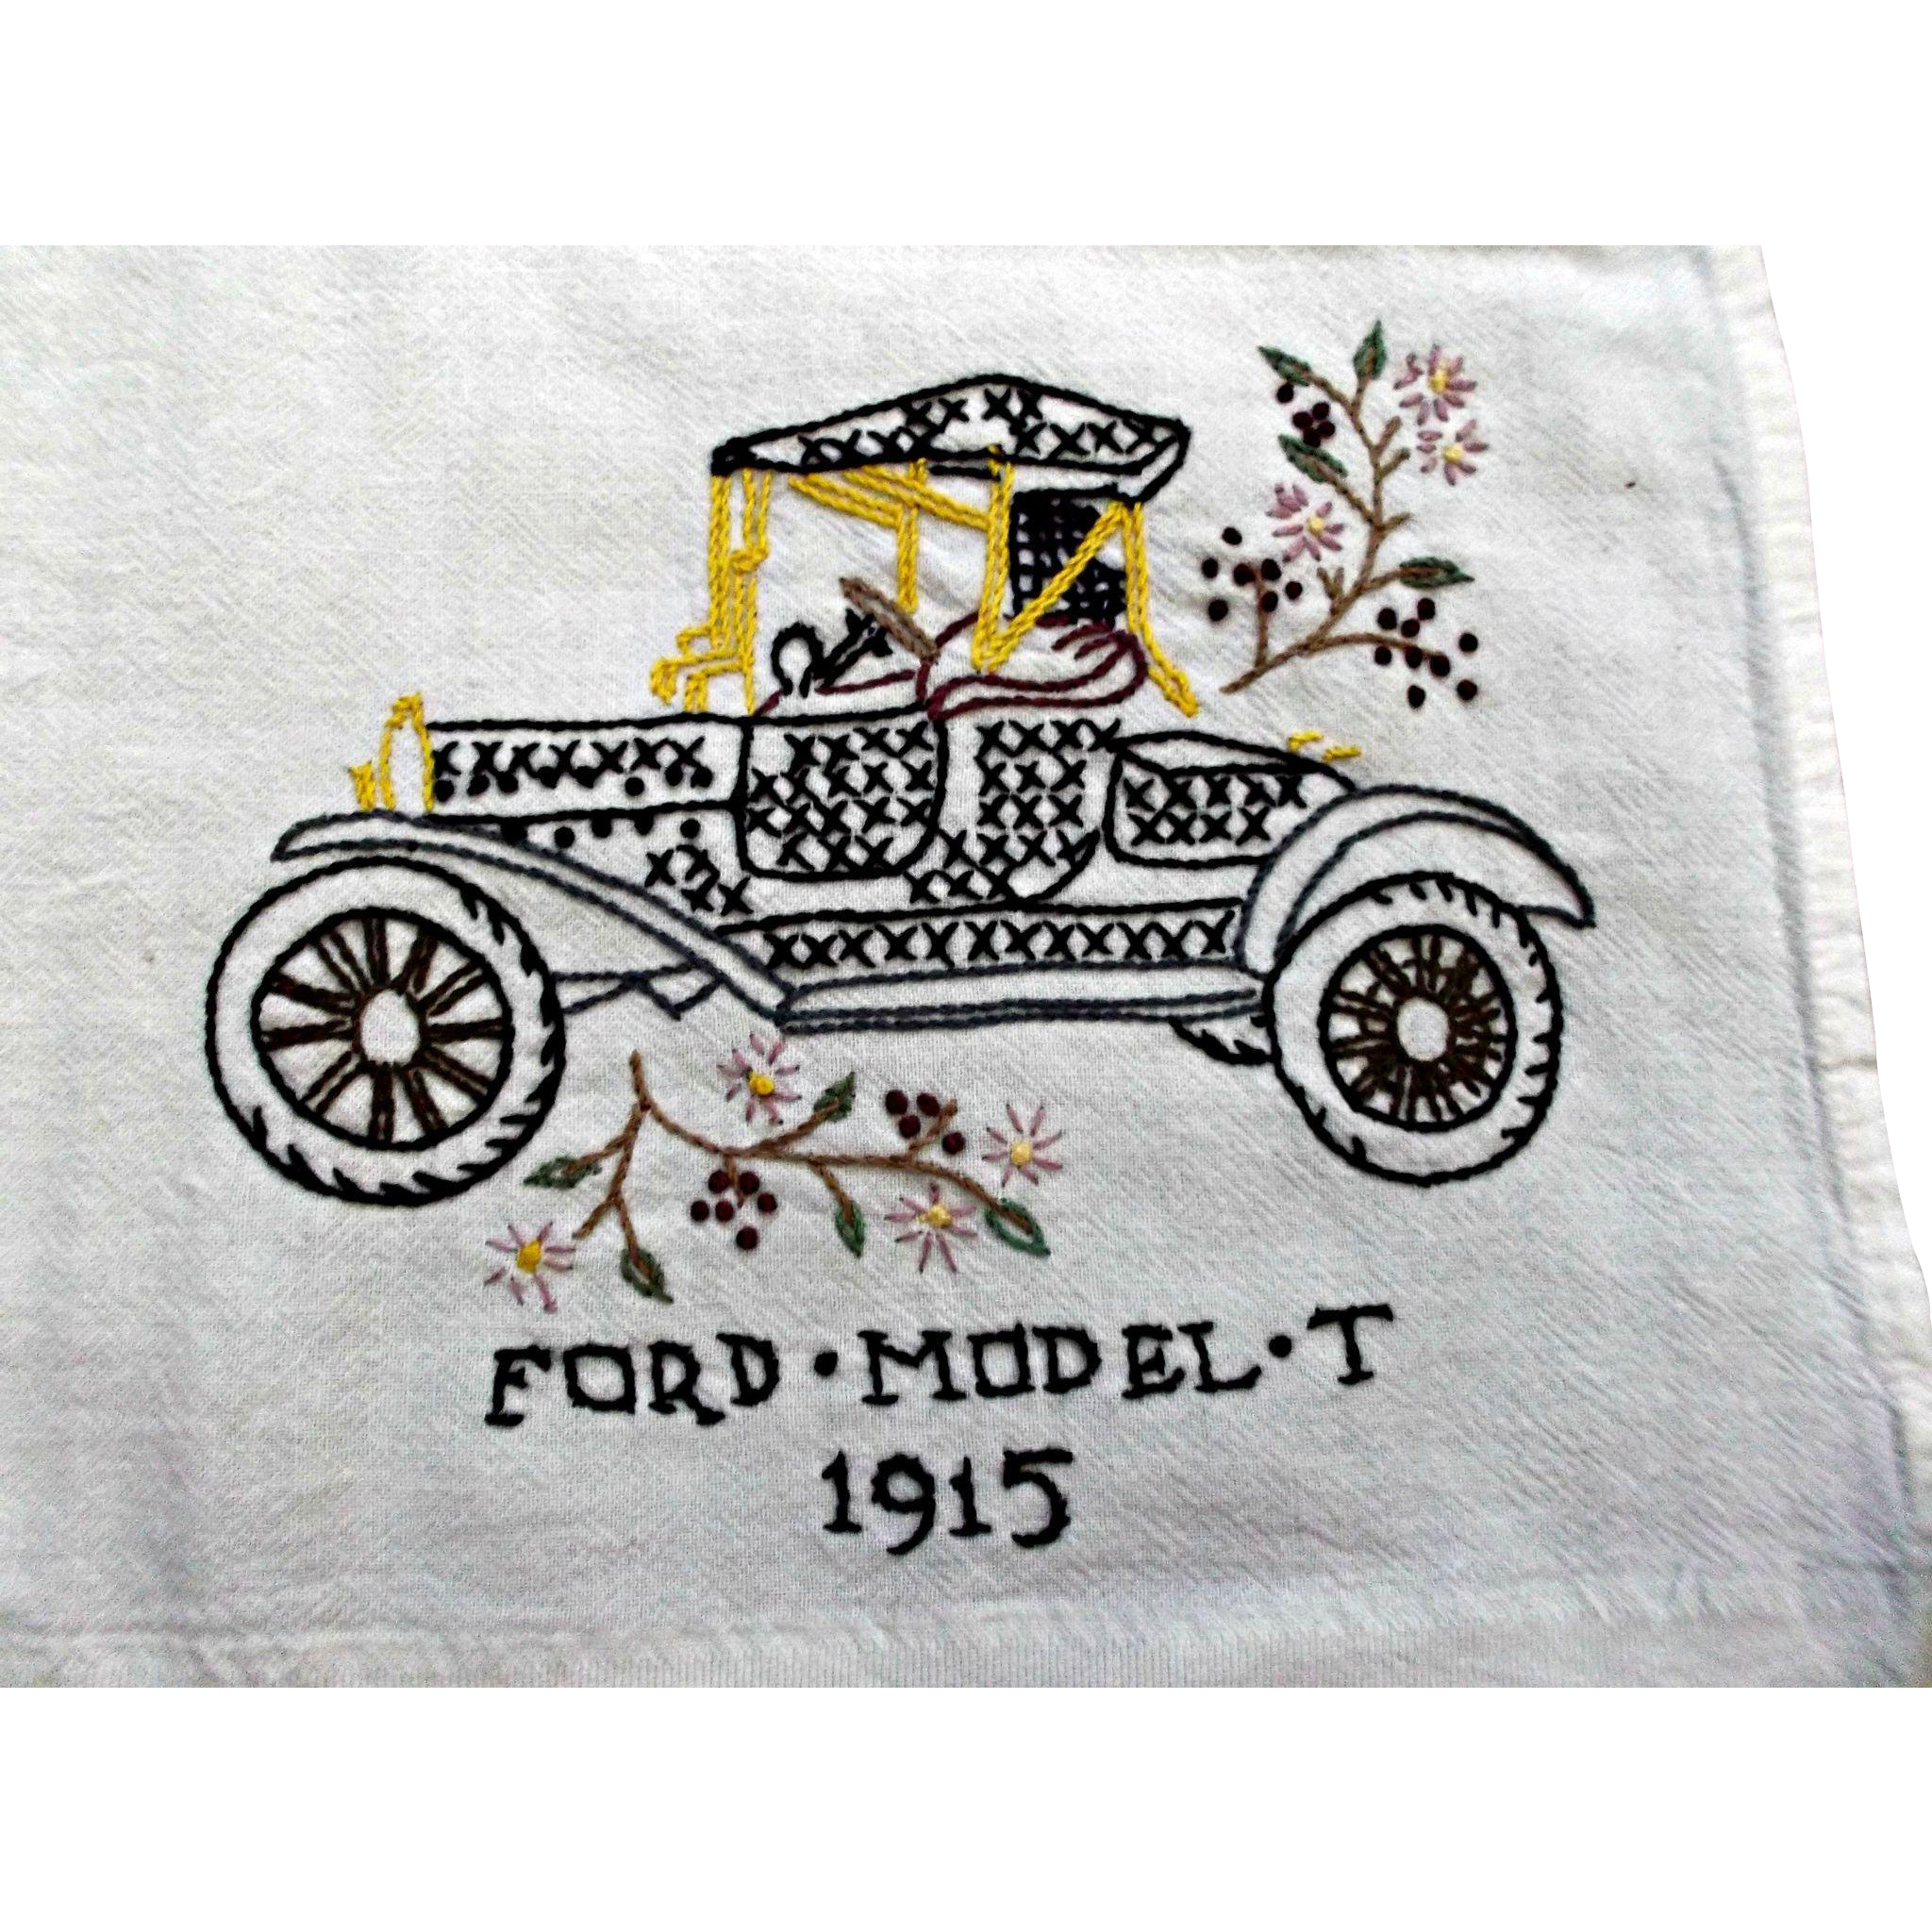 Crown Jewel Bath Set 12 Bath Towels 12 Hand Towels 12: Hand Embroidered Towel Tablecloth Cover Vintage Ford Model